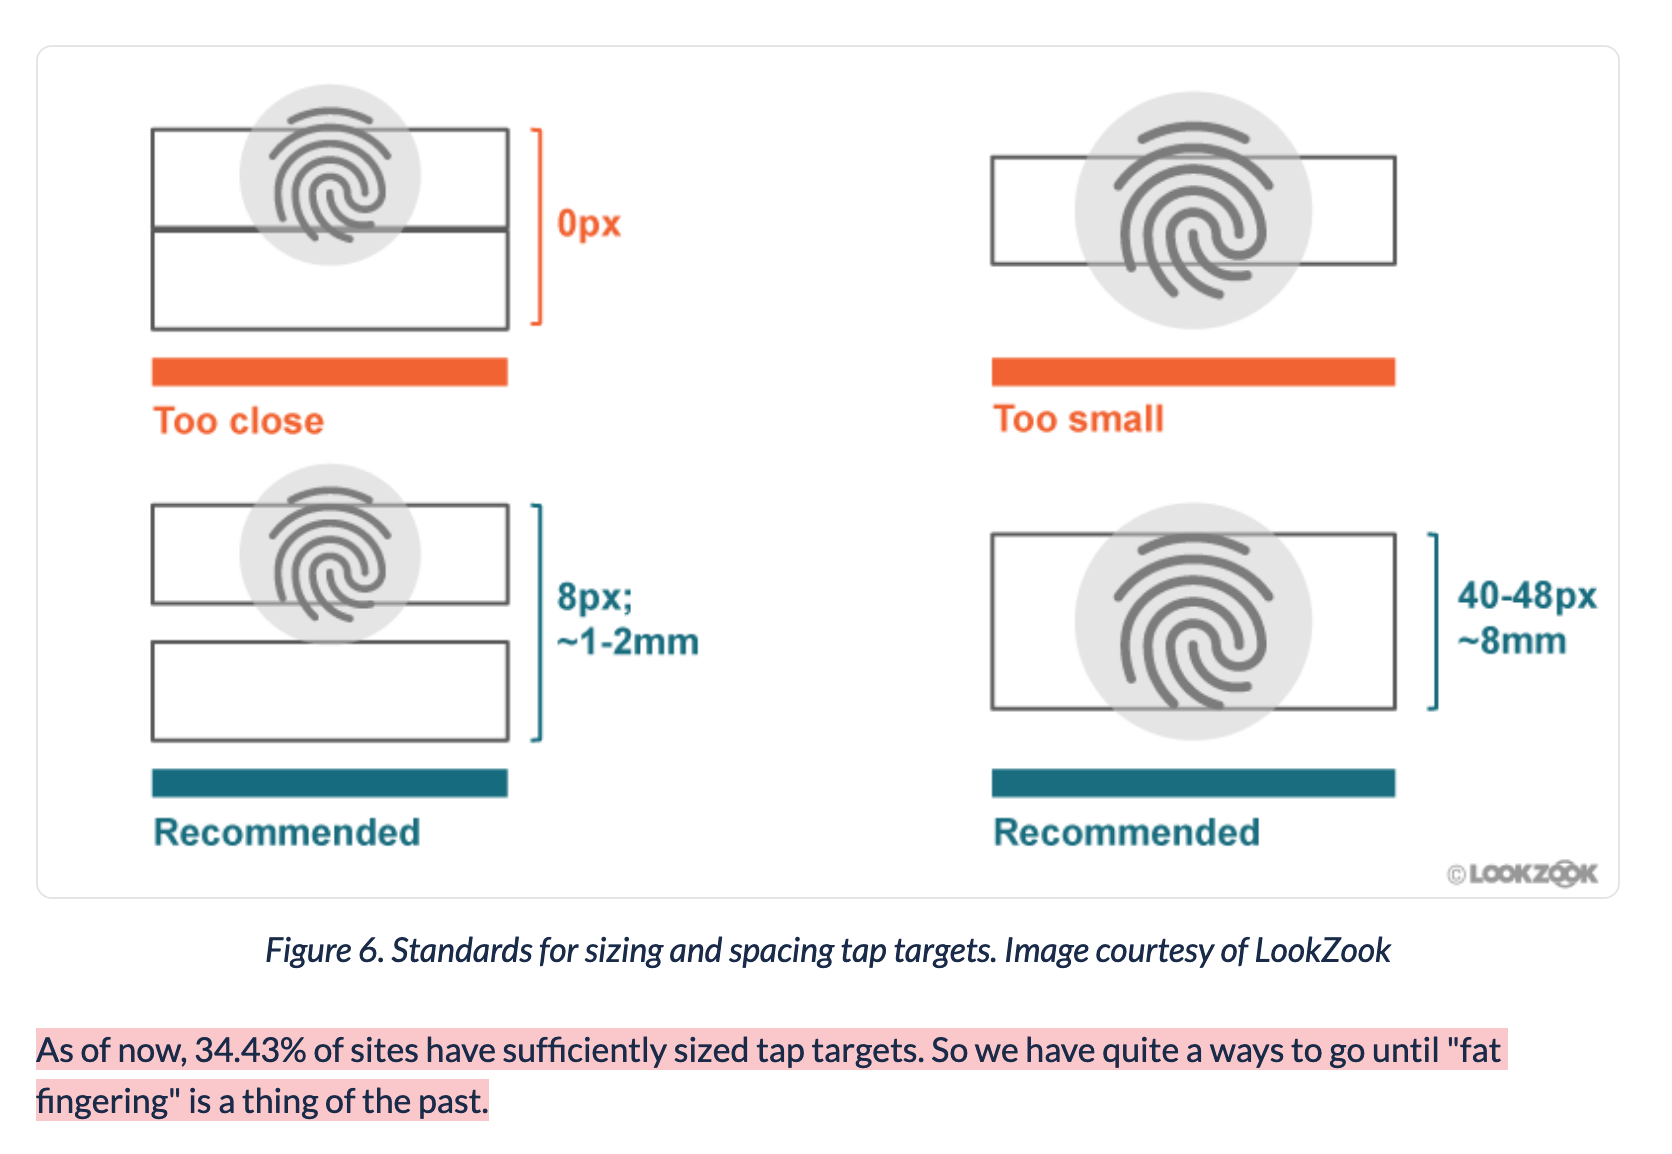 Graphic showing sufficient tap targets... With explanation: As of now, 34.43% of sites have sufficiently sized tap targets. So we have quite a ways to go until 'fat fingering' is a thing of the past